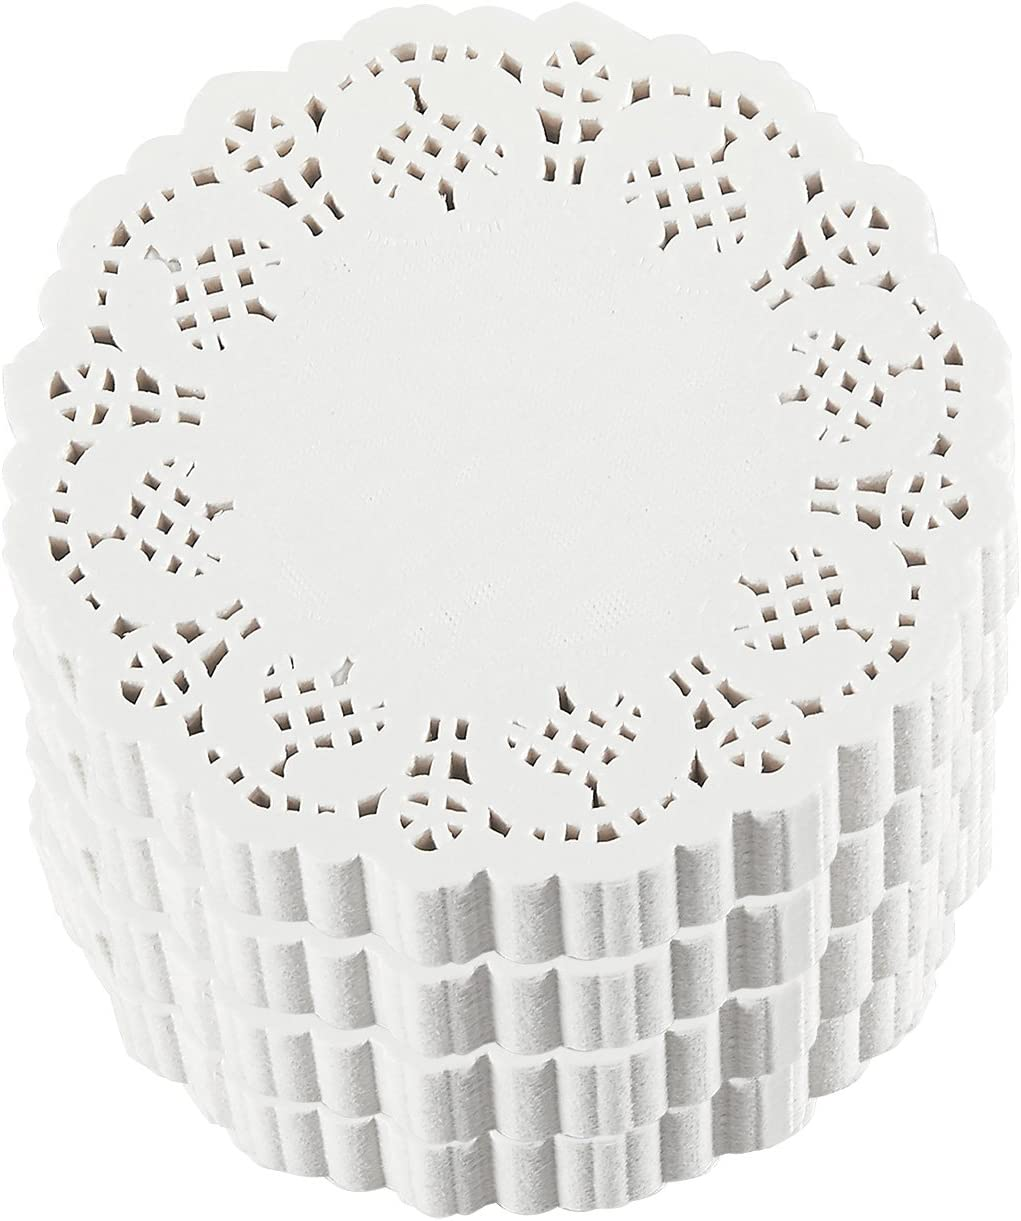 Juvale 1000-Pack White 4 Inch Paper Lace Doilies for Desserts, Weddings, Baby Showers, Table Decor